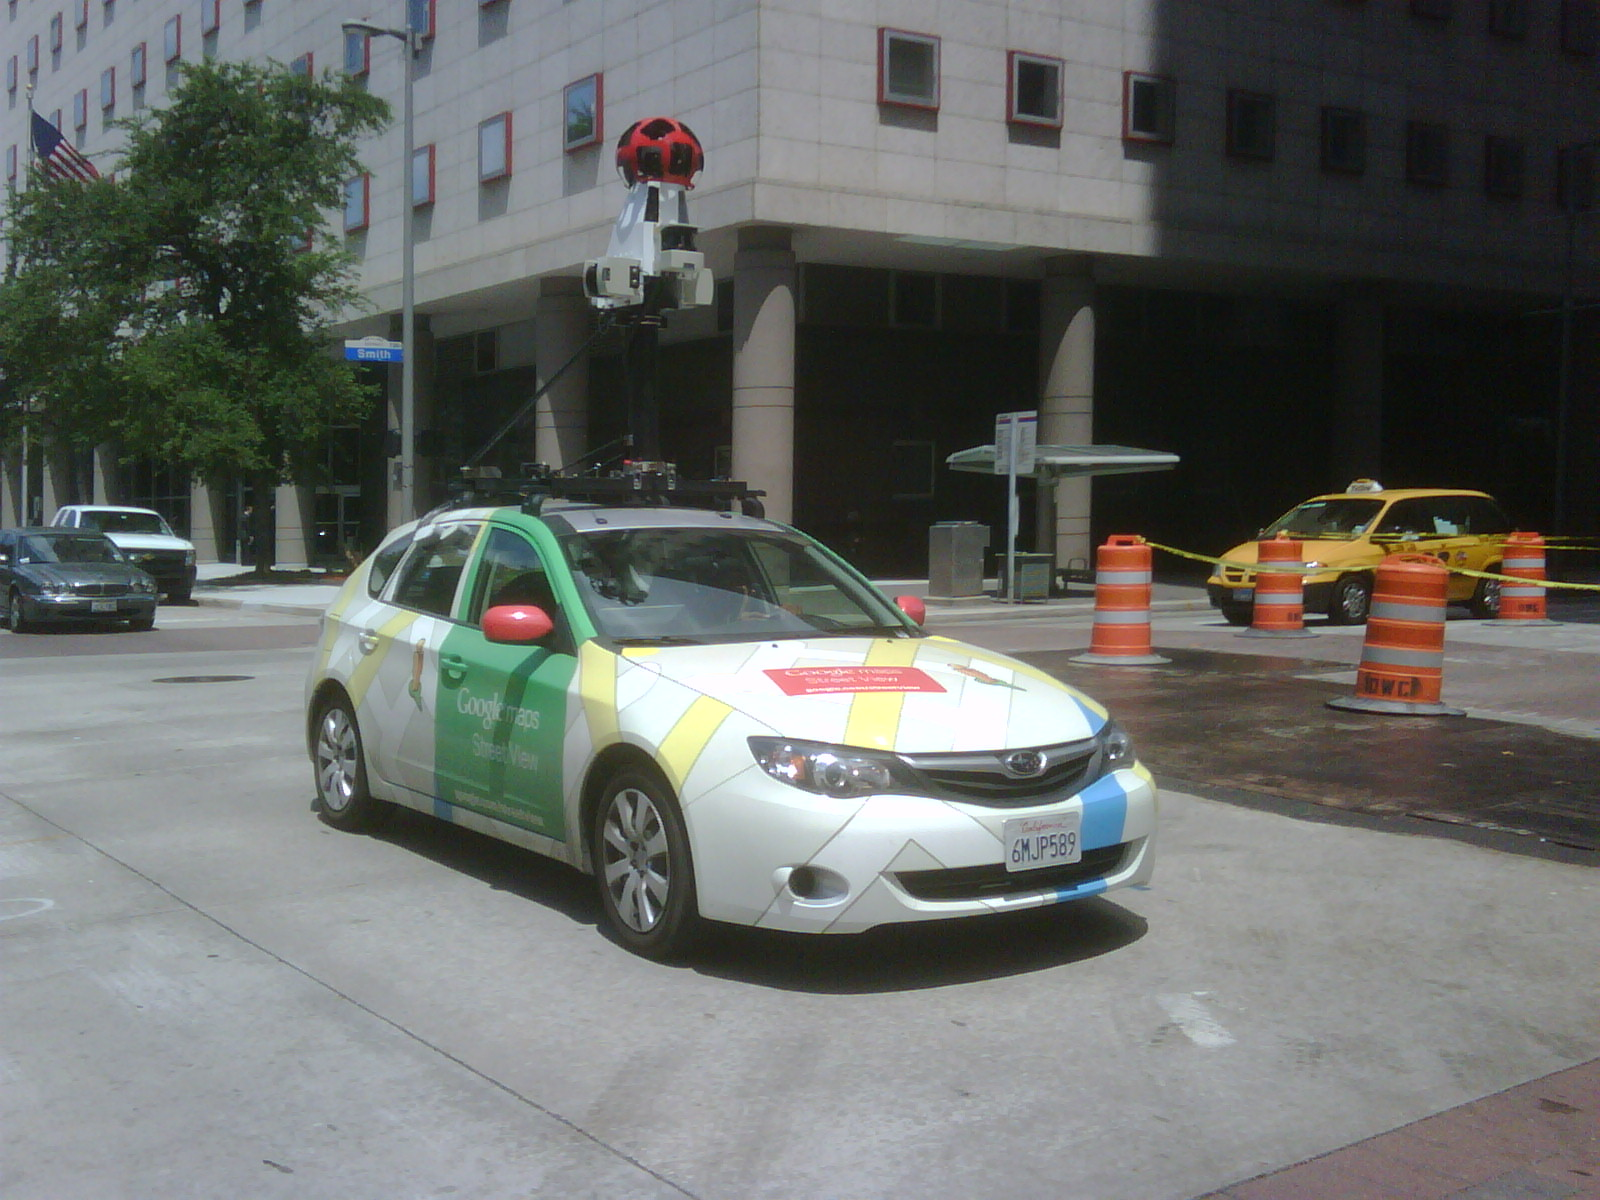 Google is watching You – is this houston? on geotagging camera, apple camera, road view camera, google street view privacy concerns, google camera car, google street view in oceania, google street view in africa, aspen movie map, hangouts camera, animation camera, google street view in asia, google 360 camera, google street view in the united states, google street view in europe, flickr camera, blogger camera, draw something camera, google street view in latin america, mobile web camera, google underwater camera, sketchup camera, android camera, google earth, google map person, google earth camera, web mapping, vimeo camera, flash camera, competition of google street view, google art project, google search,